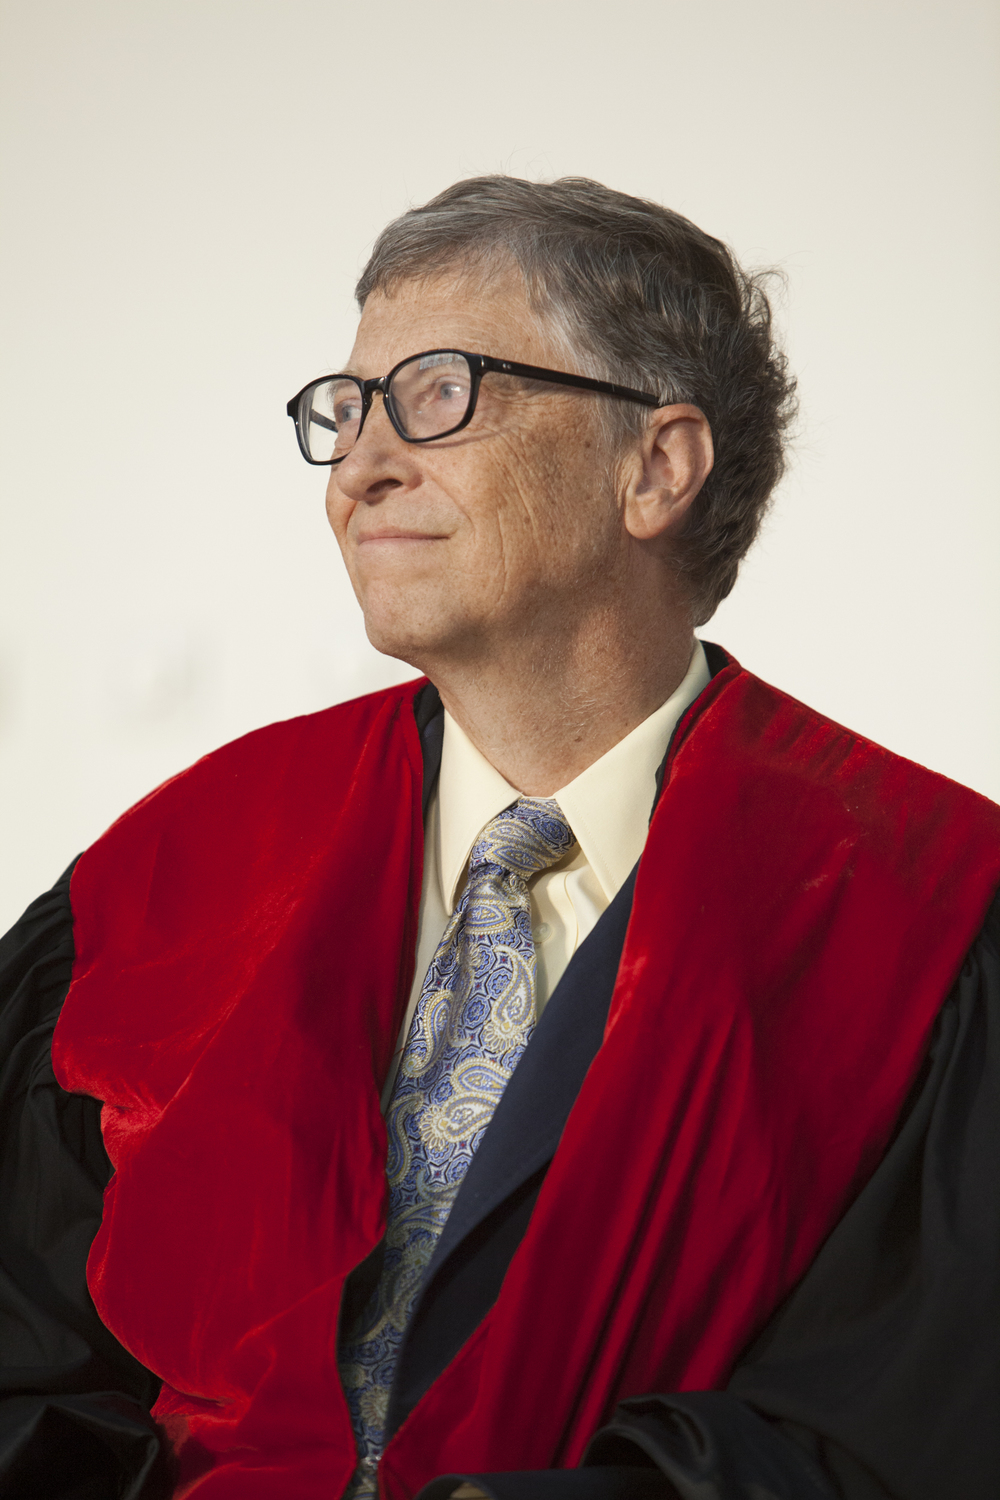 Bill Gates, Co-Chair of Bill and Melinda Gates Foundation is pictured during an Honourary Doctorate Degree ceremony at Addis Ababa University in Addis Ababa Ethiopia on 24 July 2014. Bill Gates was awarded with an honorary doctorate degree from the University after his long-lasting support of development in Ethiopia. AFP PHOTO / ZACHARIAS ABUBEKER